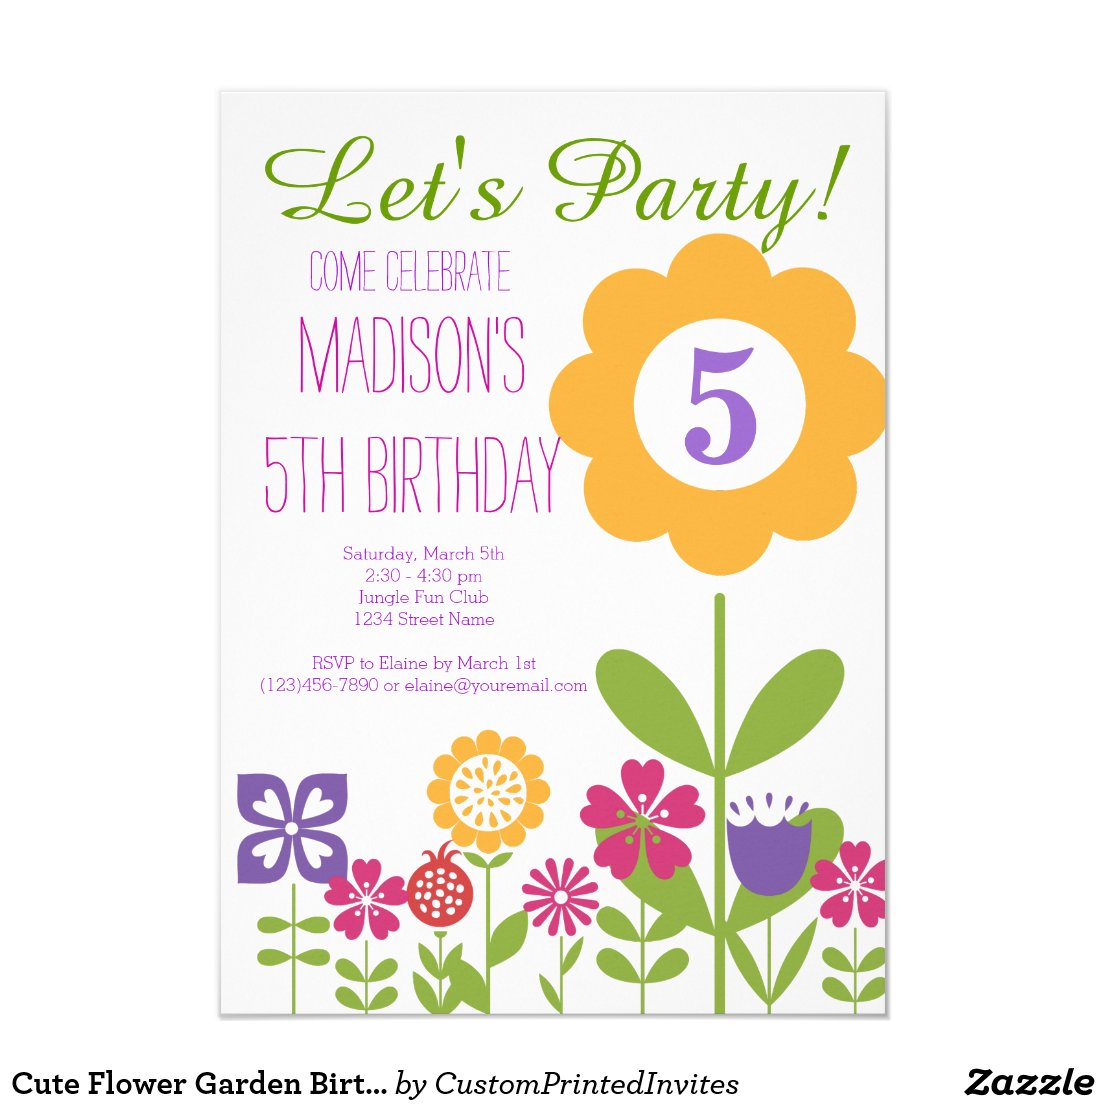 Cute Flower Garden Birthday Party Invitations